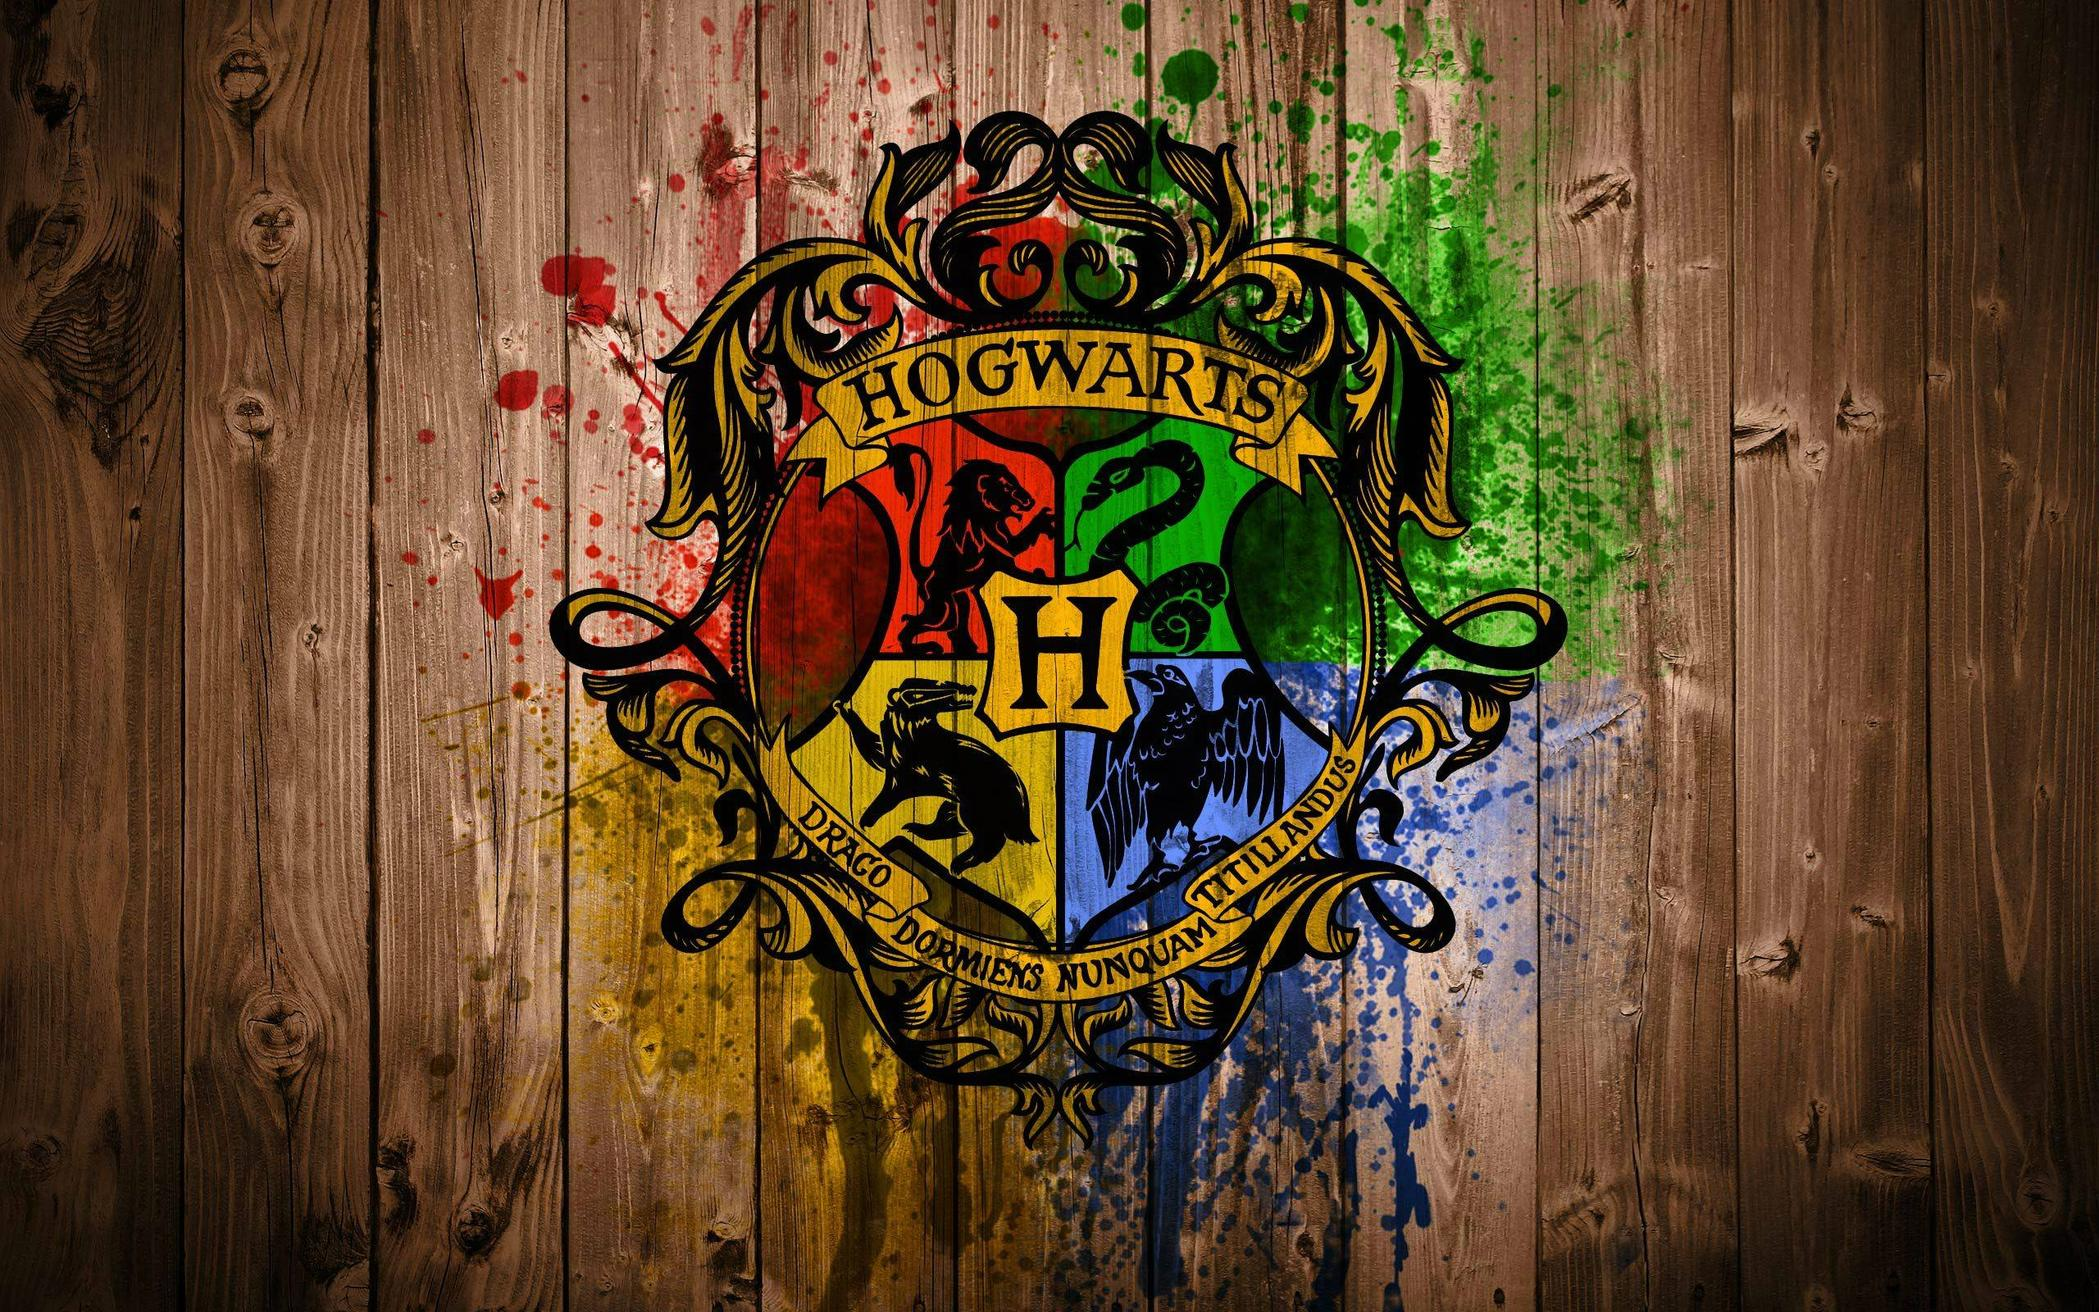 Harry potter wallpaper for your room